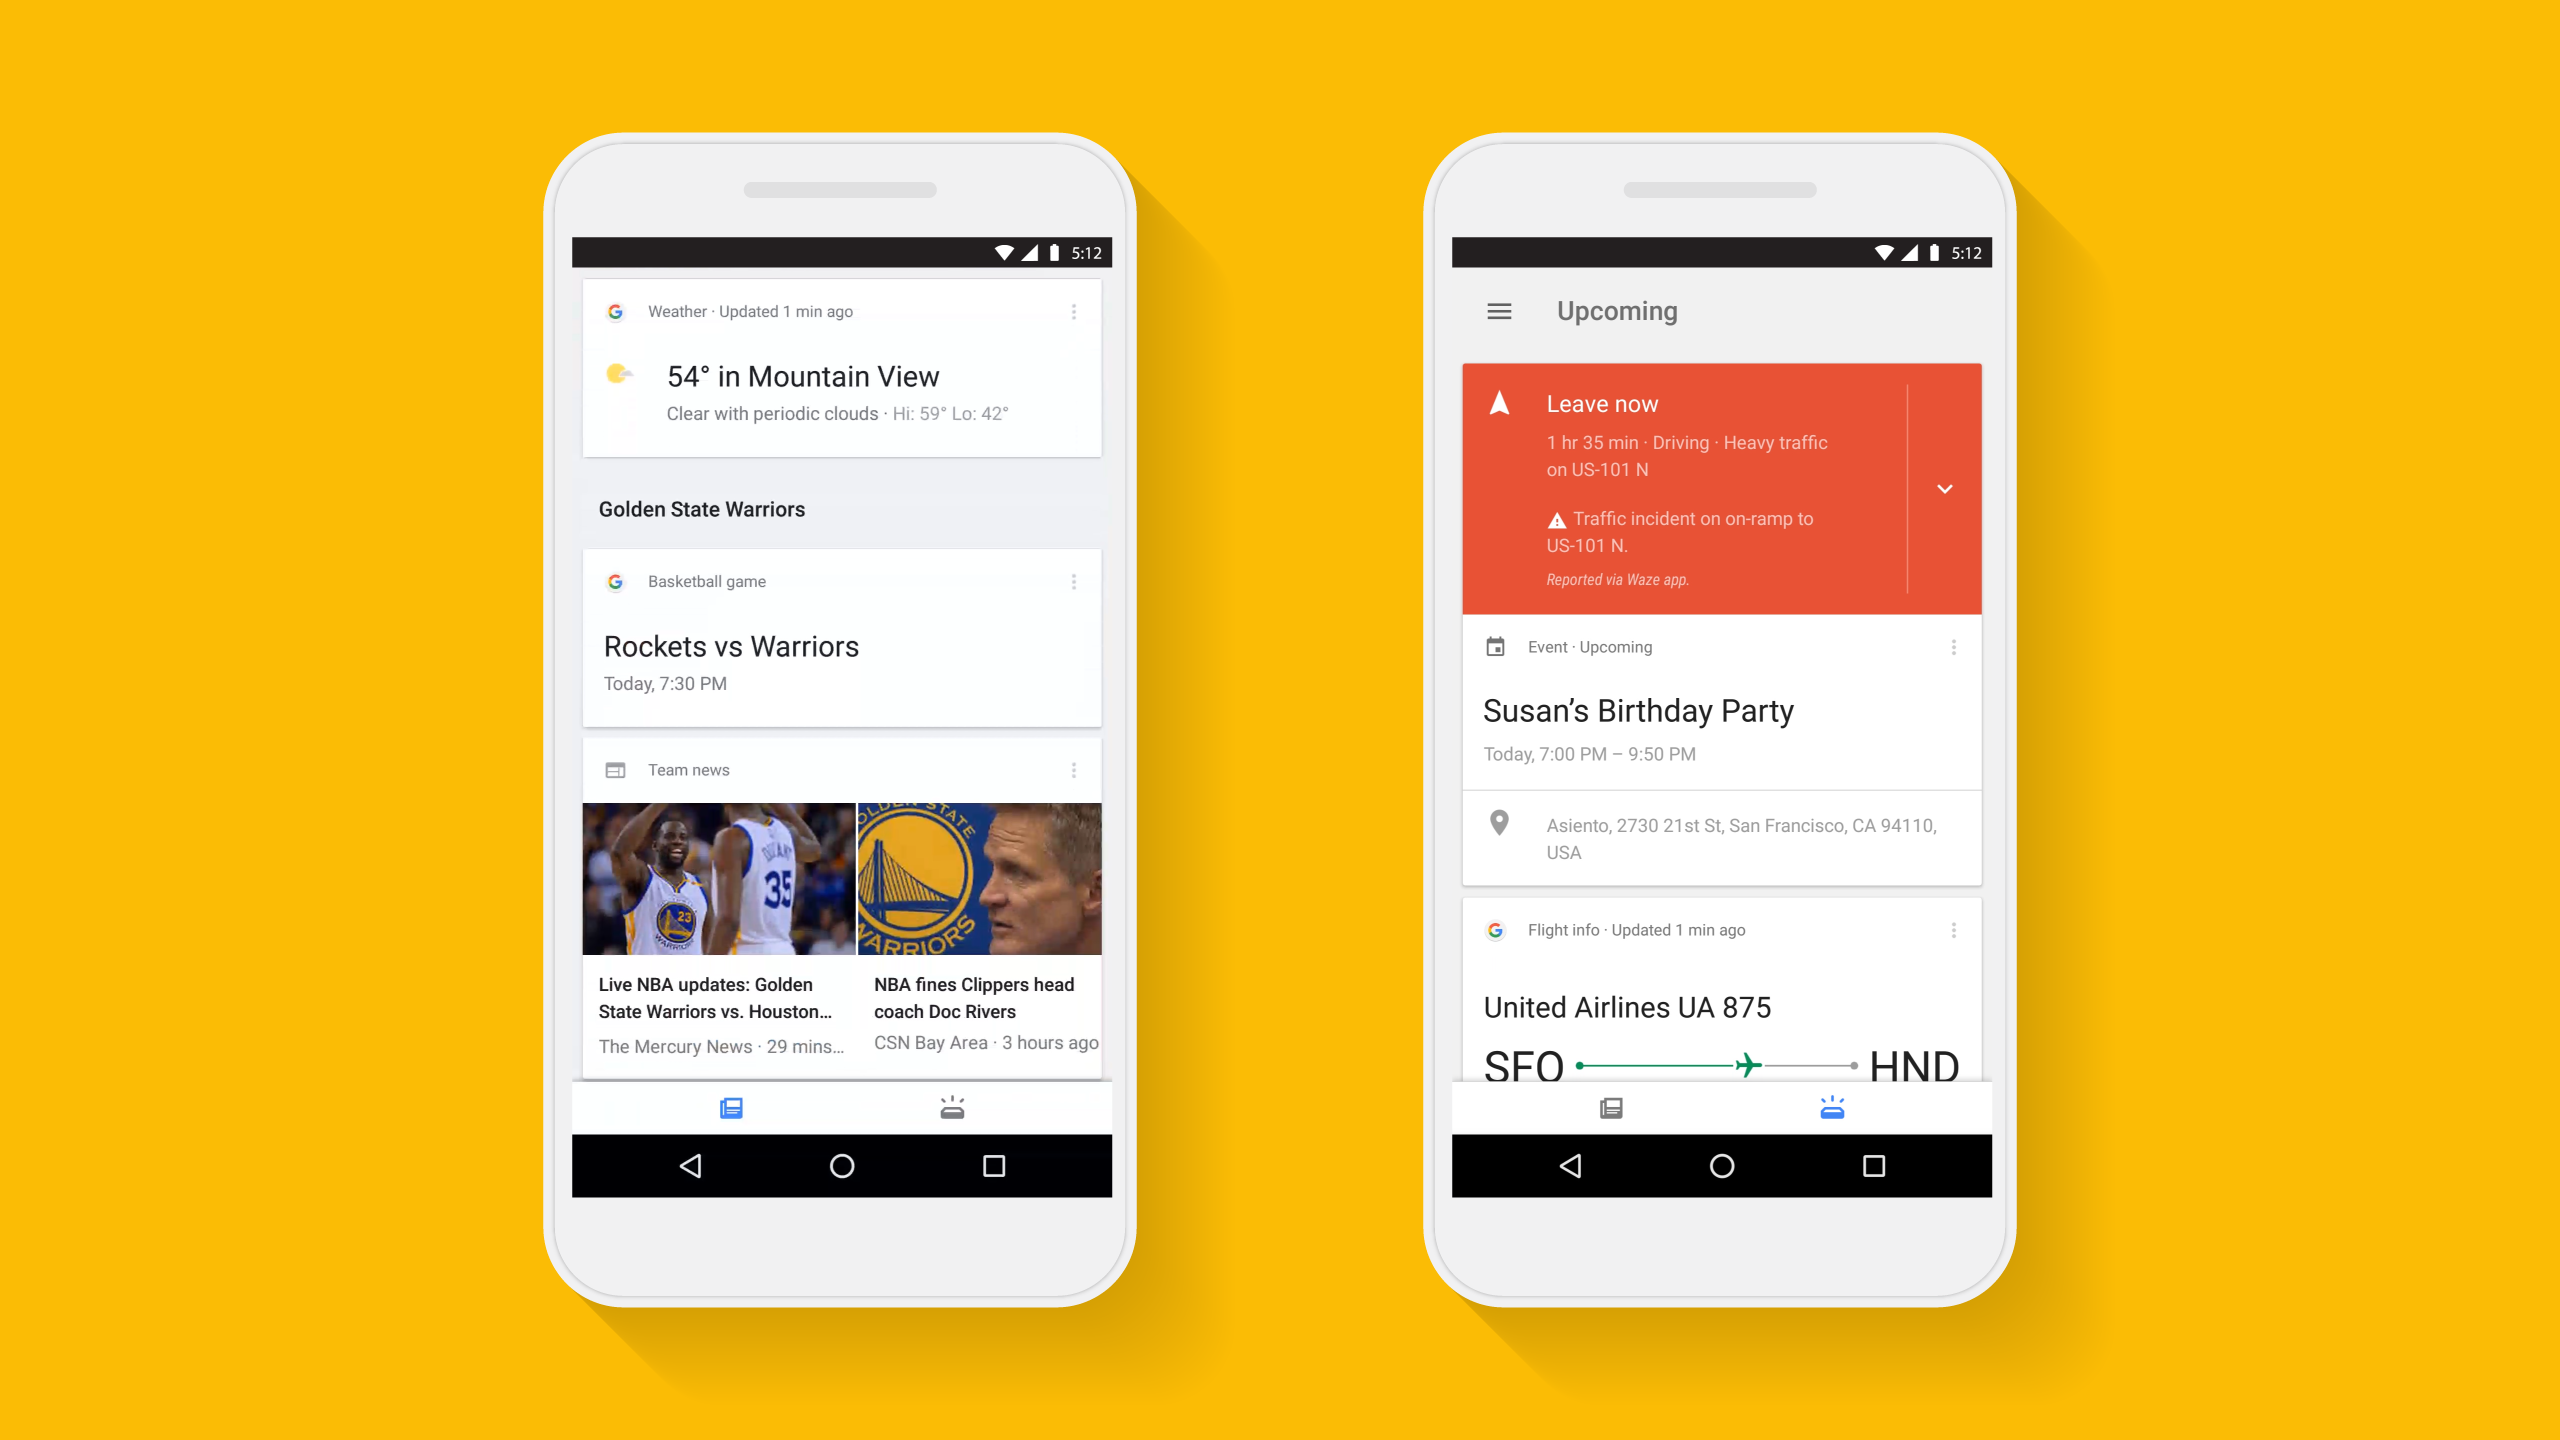 Google updates its search app, makes your personalized feed the main screen  | TechCrunch